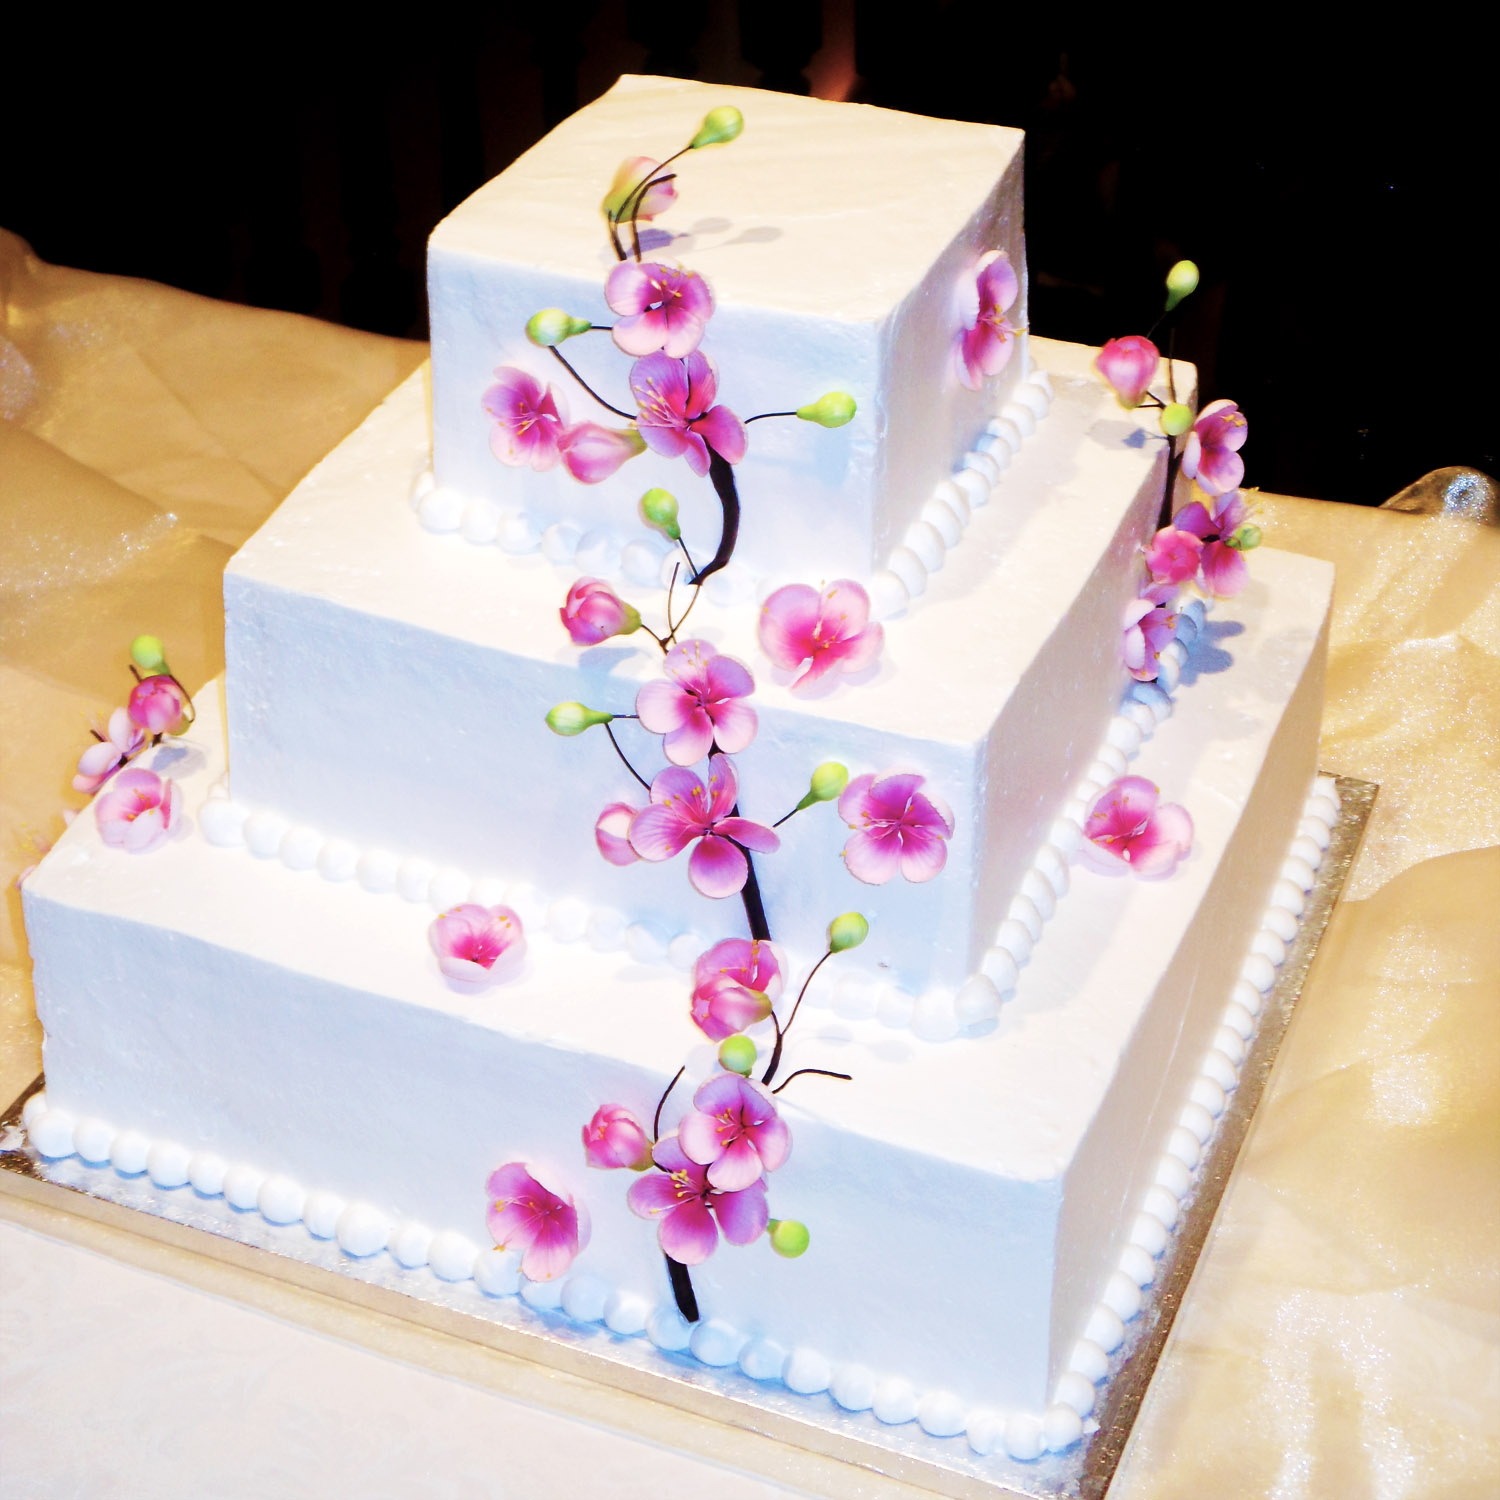 Wedding_cake_cherryblossoms.jpg